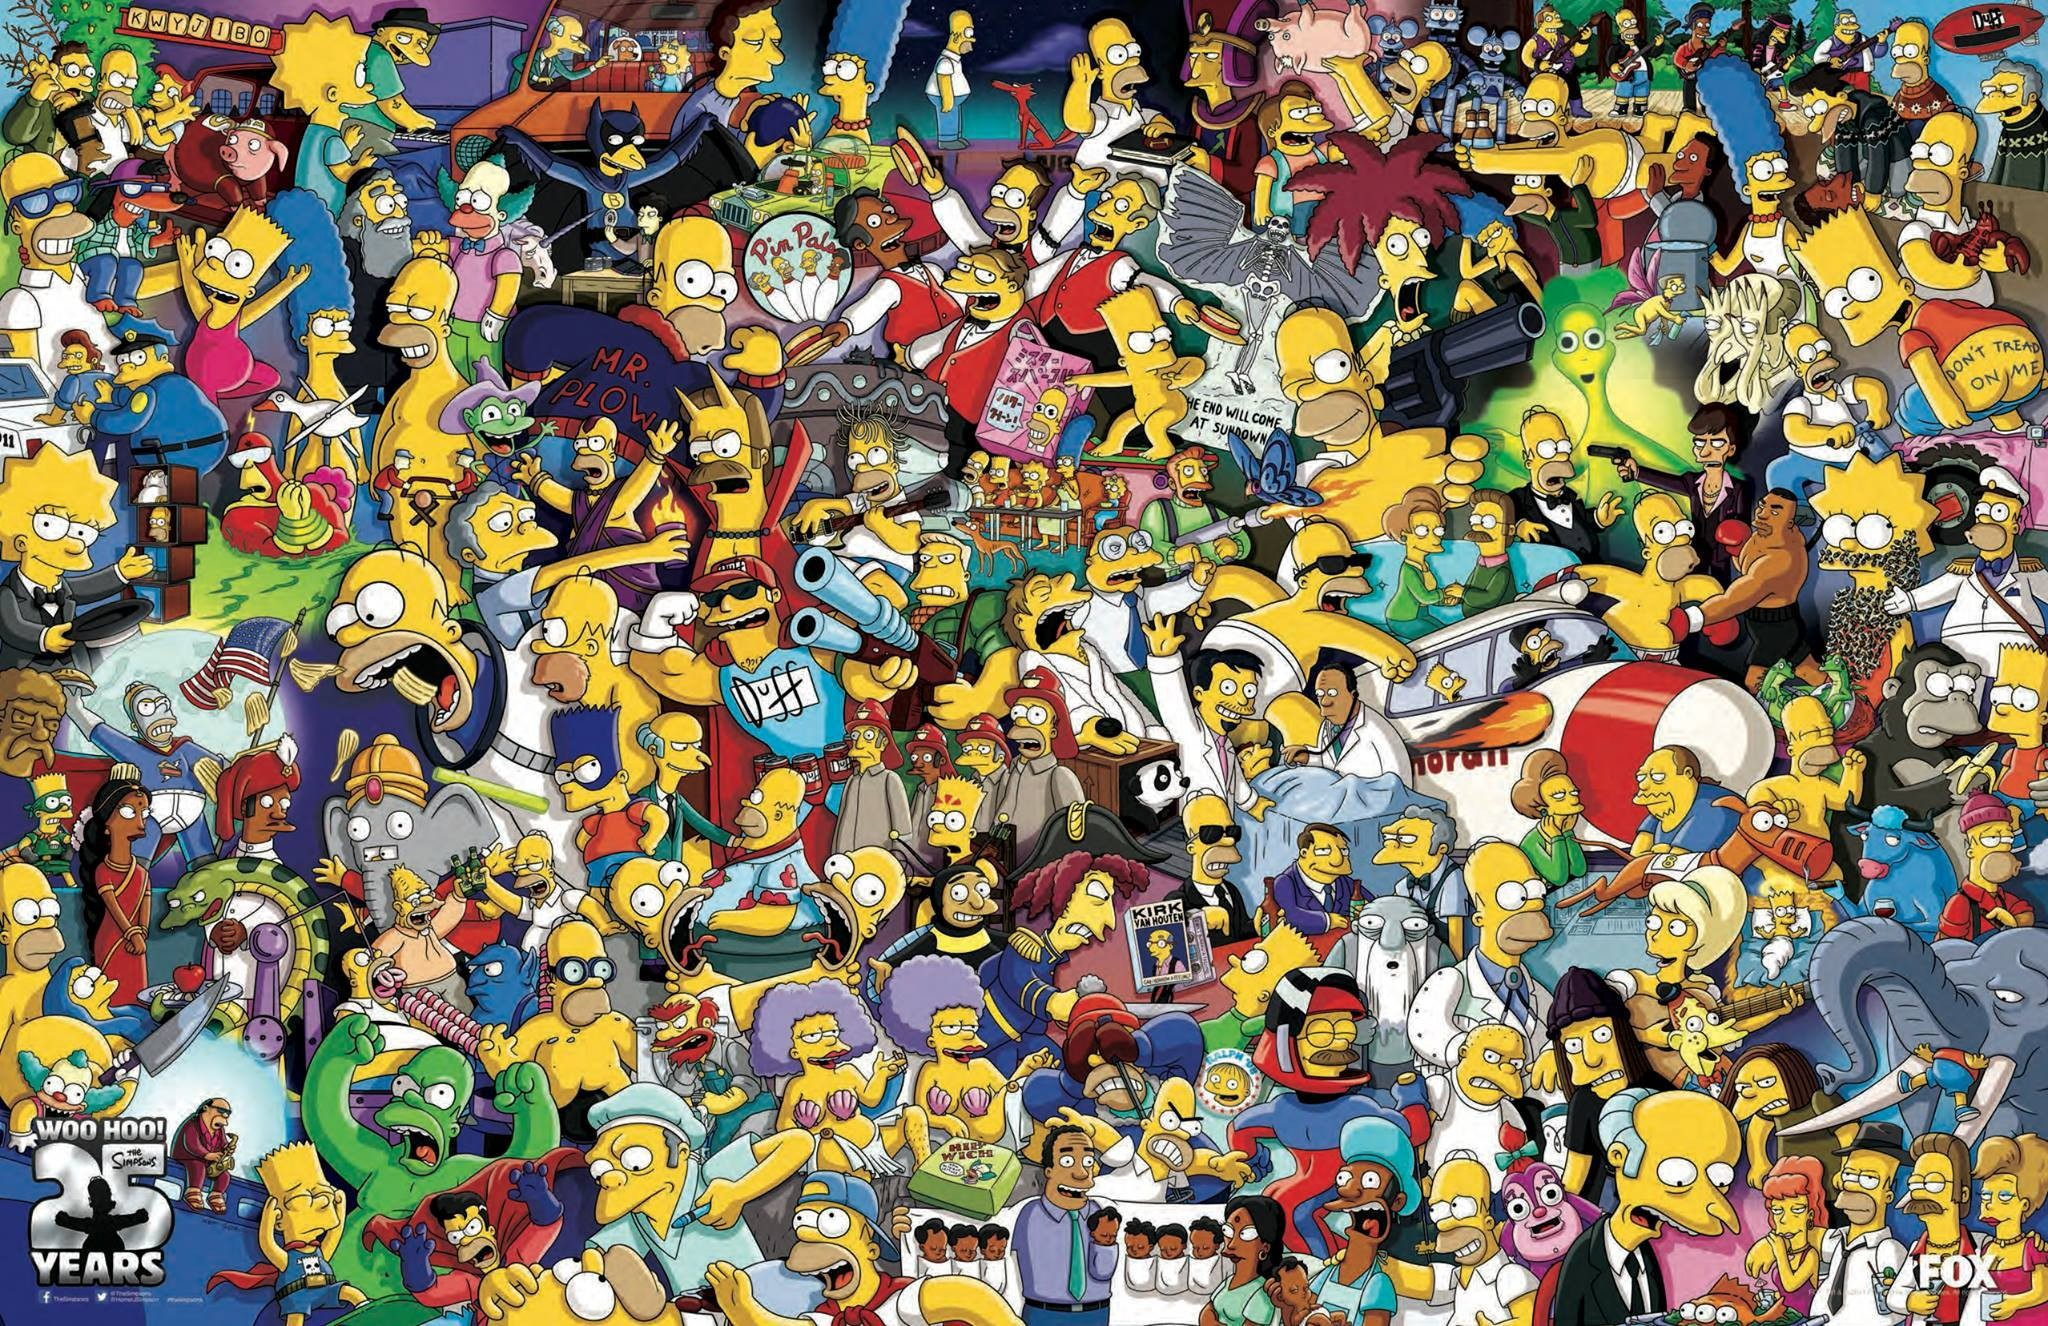 The Simpsons 3d Wallpaper The Simpsons Homer Simpson Bart Simpson Wallpapers Hd